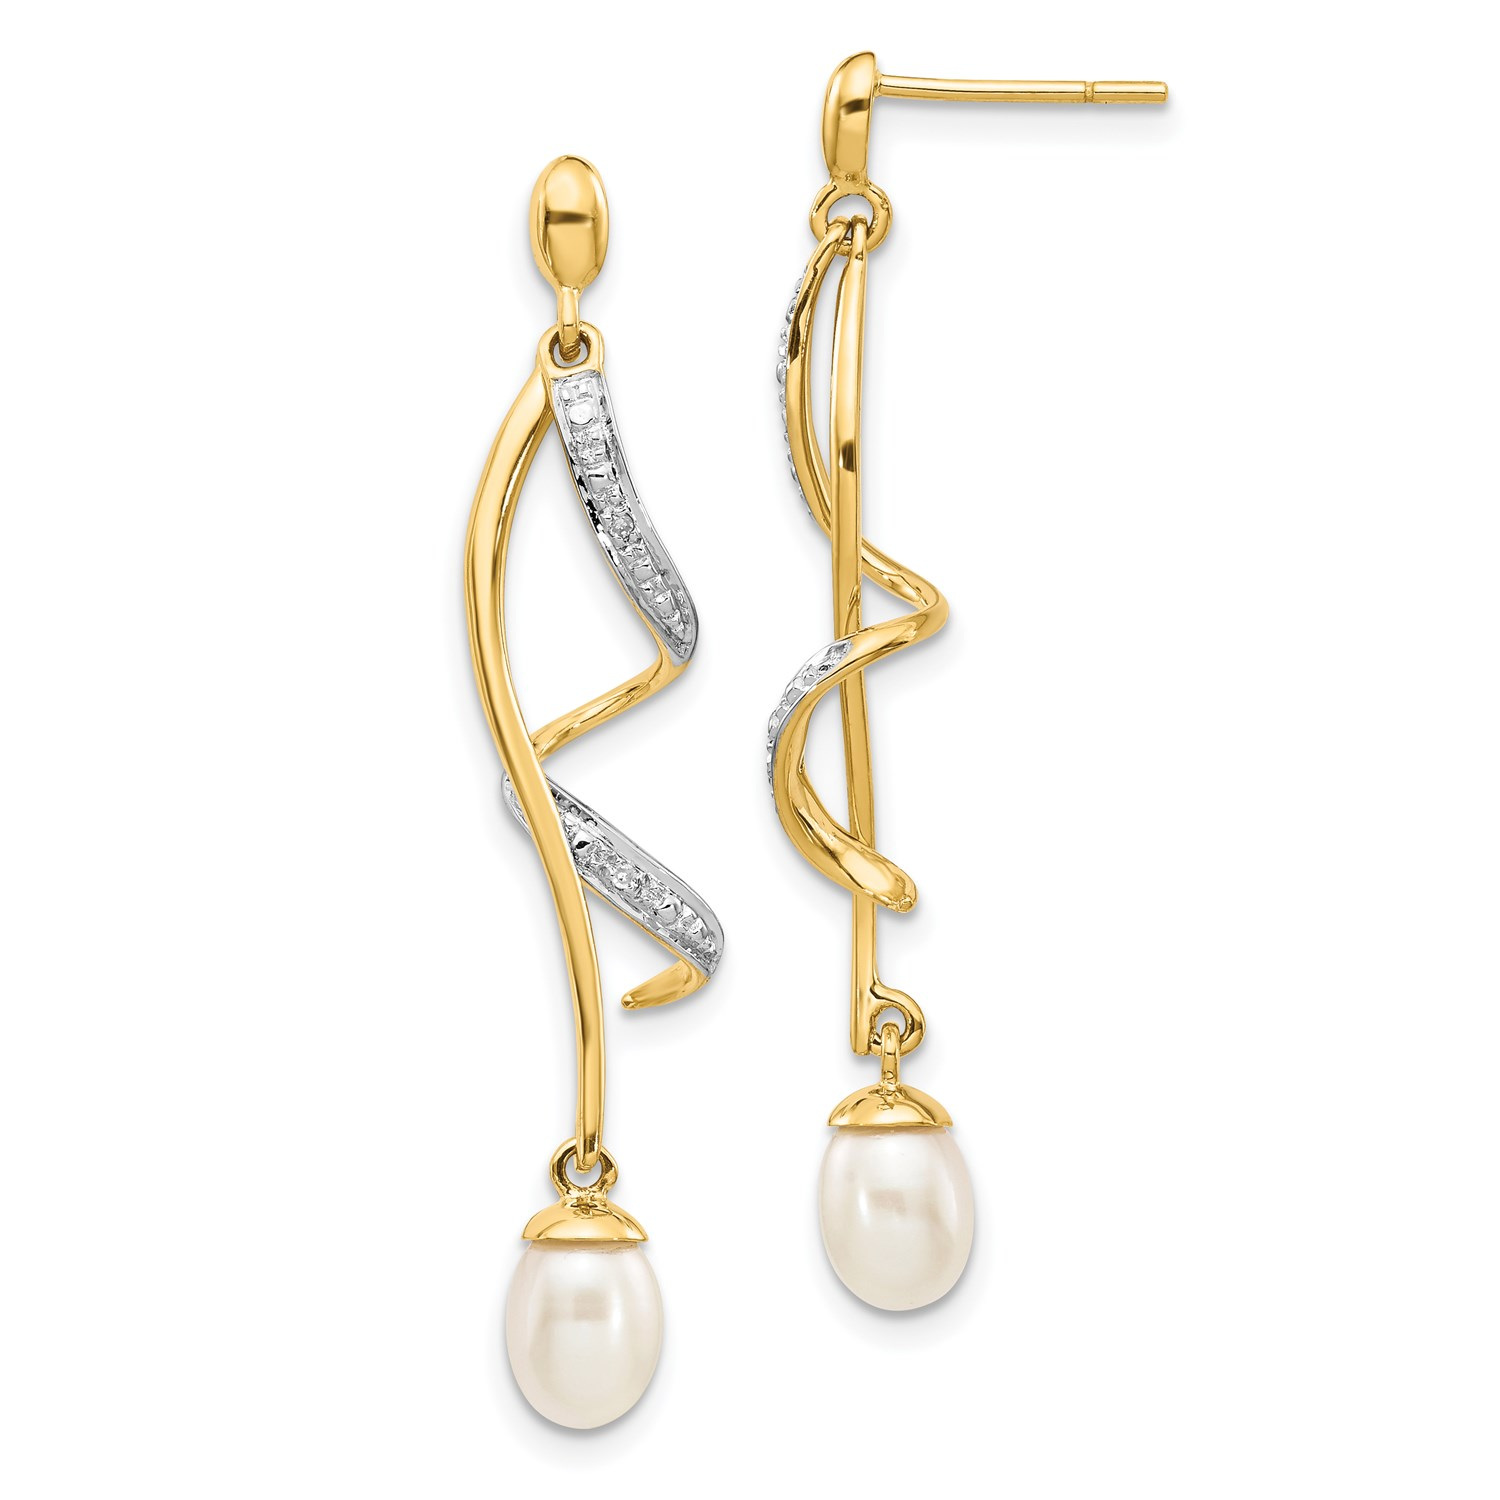 9004652e9 14k Yellow Gold 1.6IN Long Diamond and FW Cultured Pearl Post Dangle  Earrings